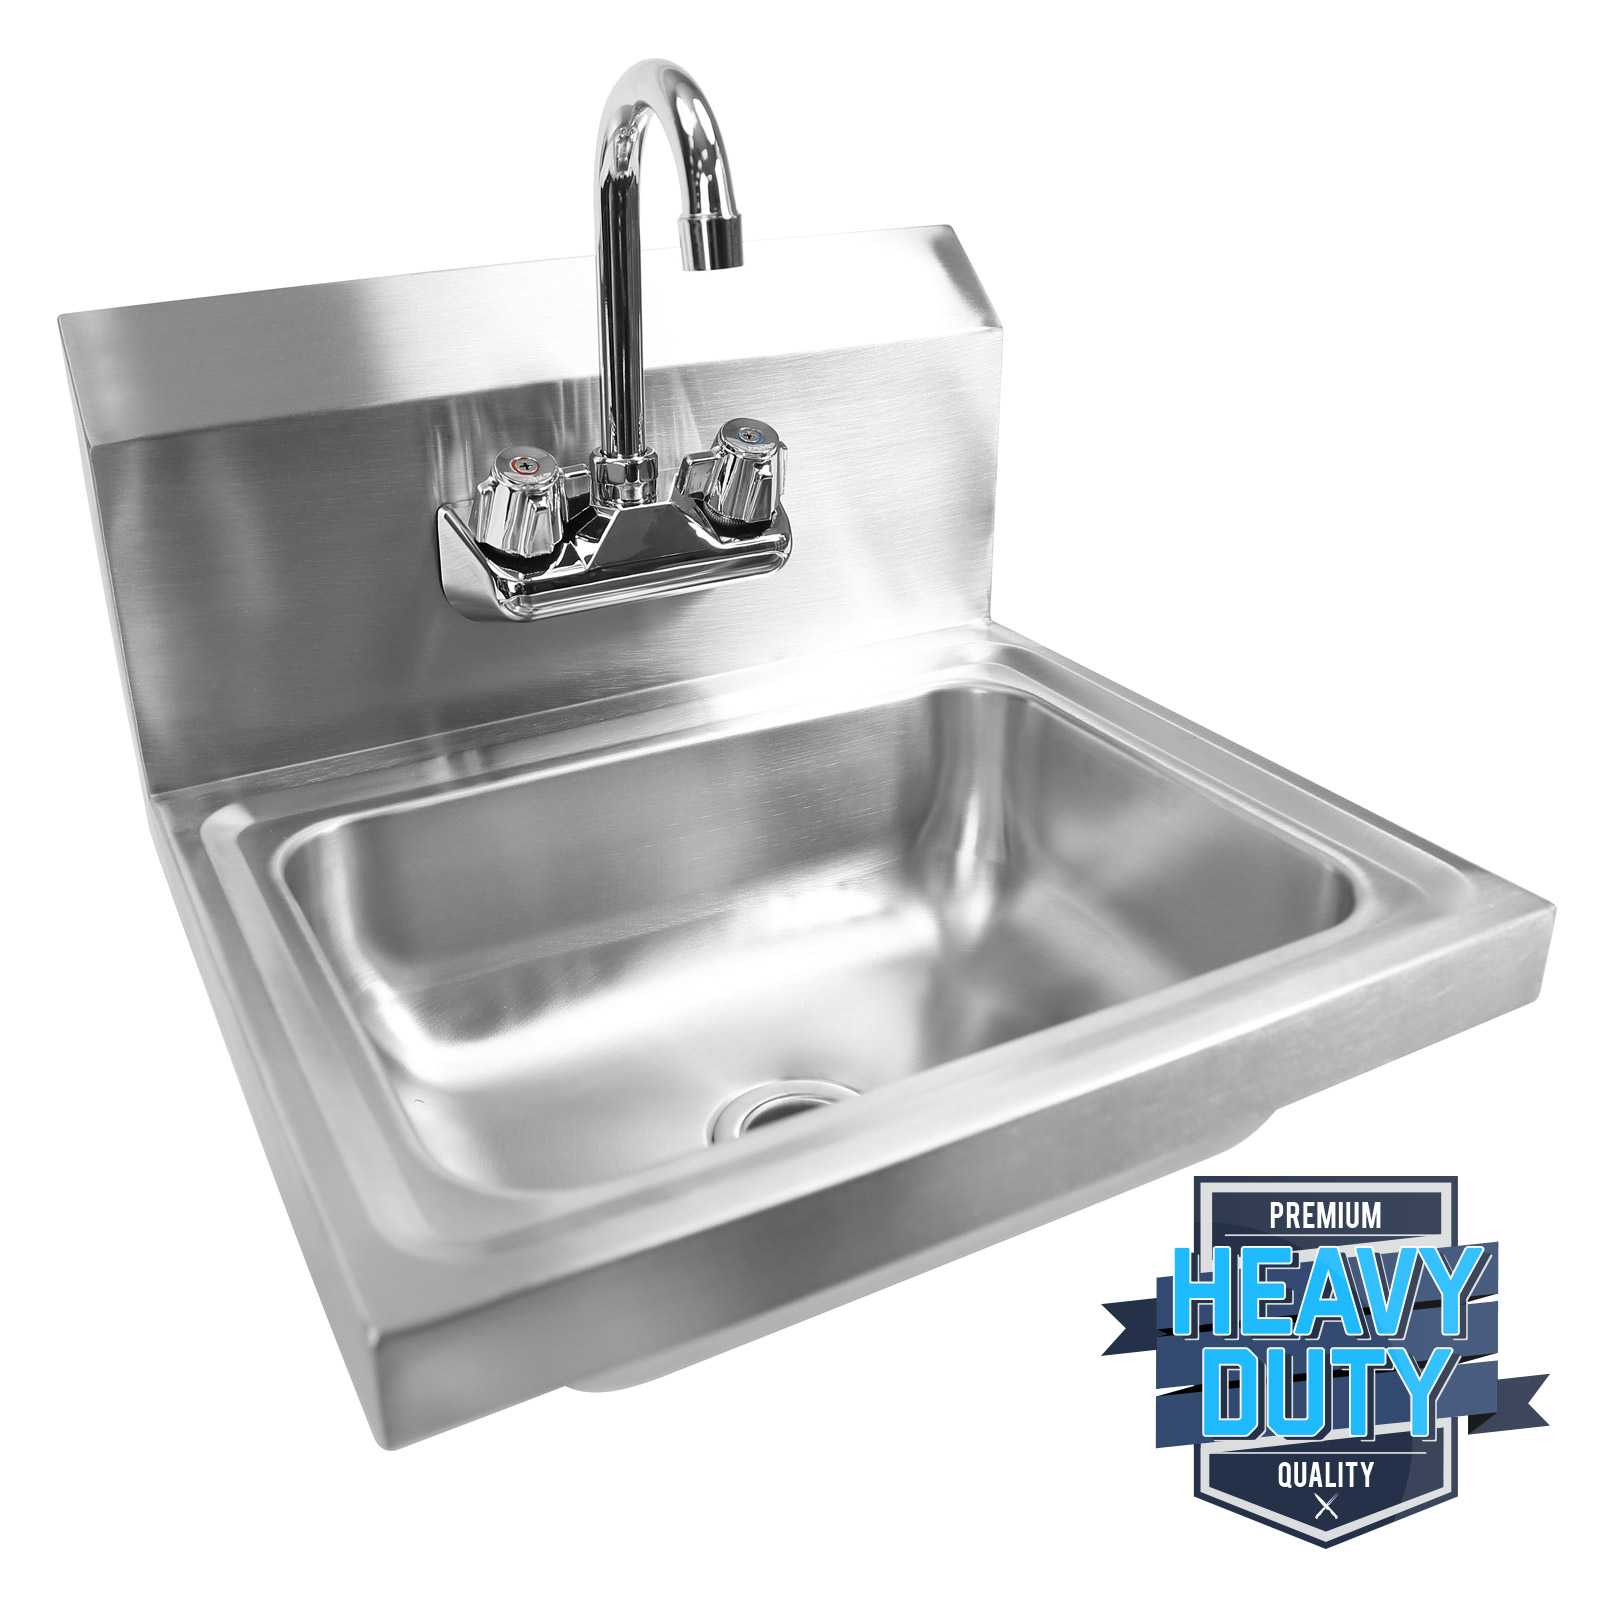 Commercial Stainless Steel Hand Wash Washing Wall Mount Sink Kitchen ...